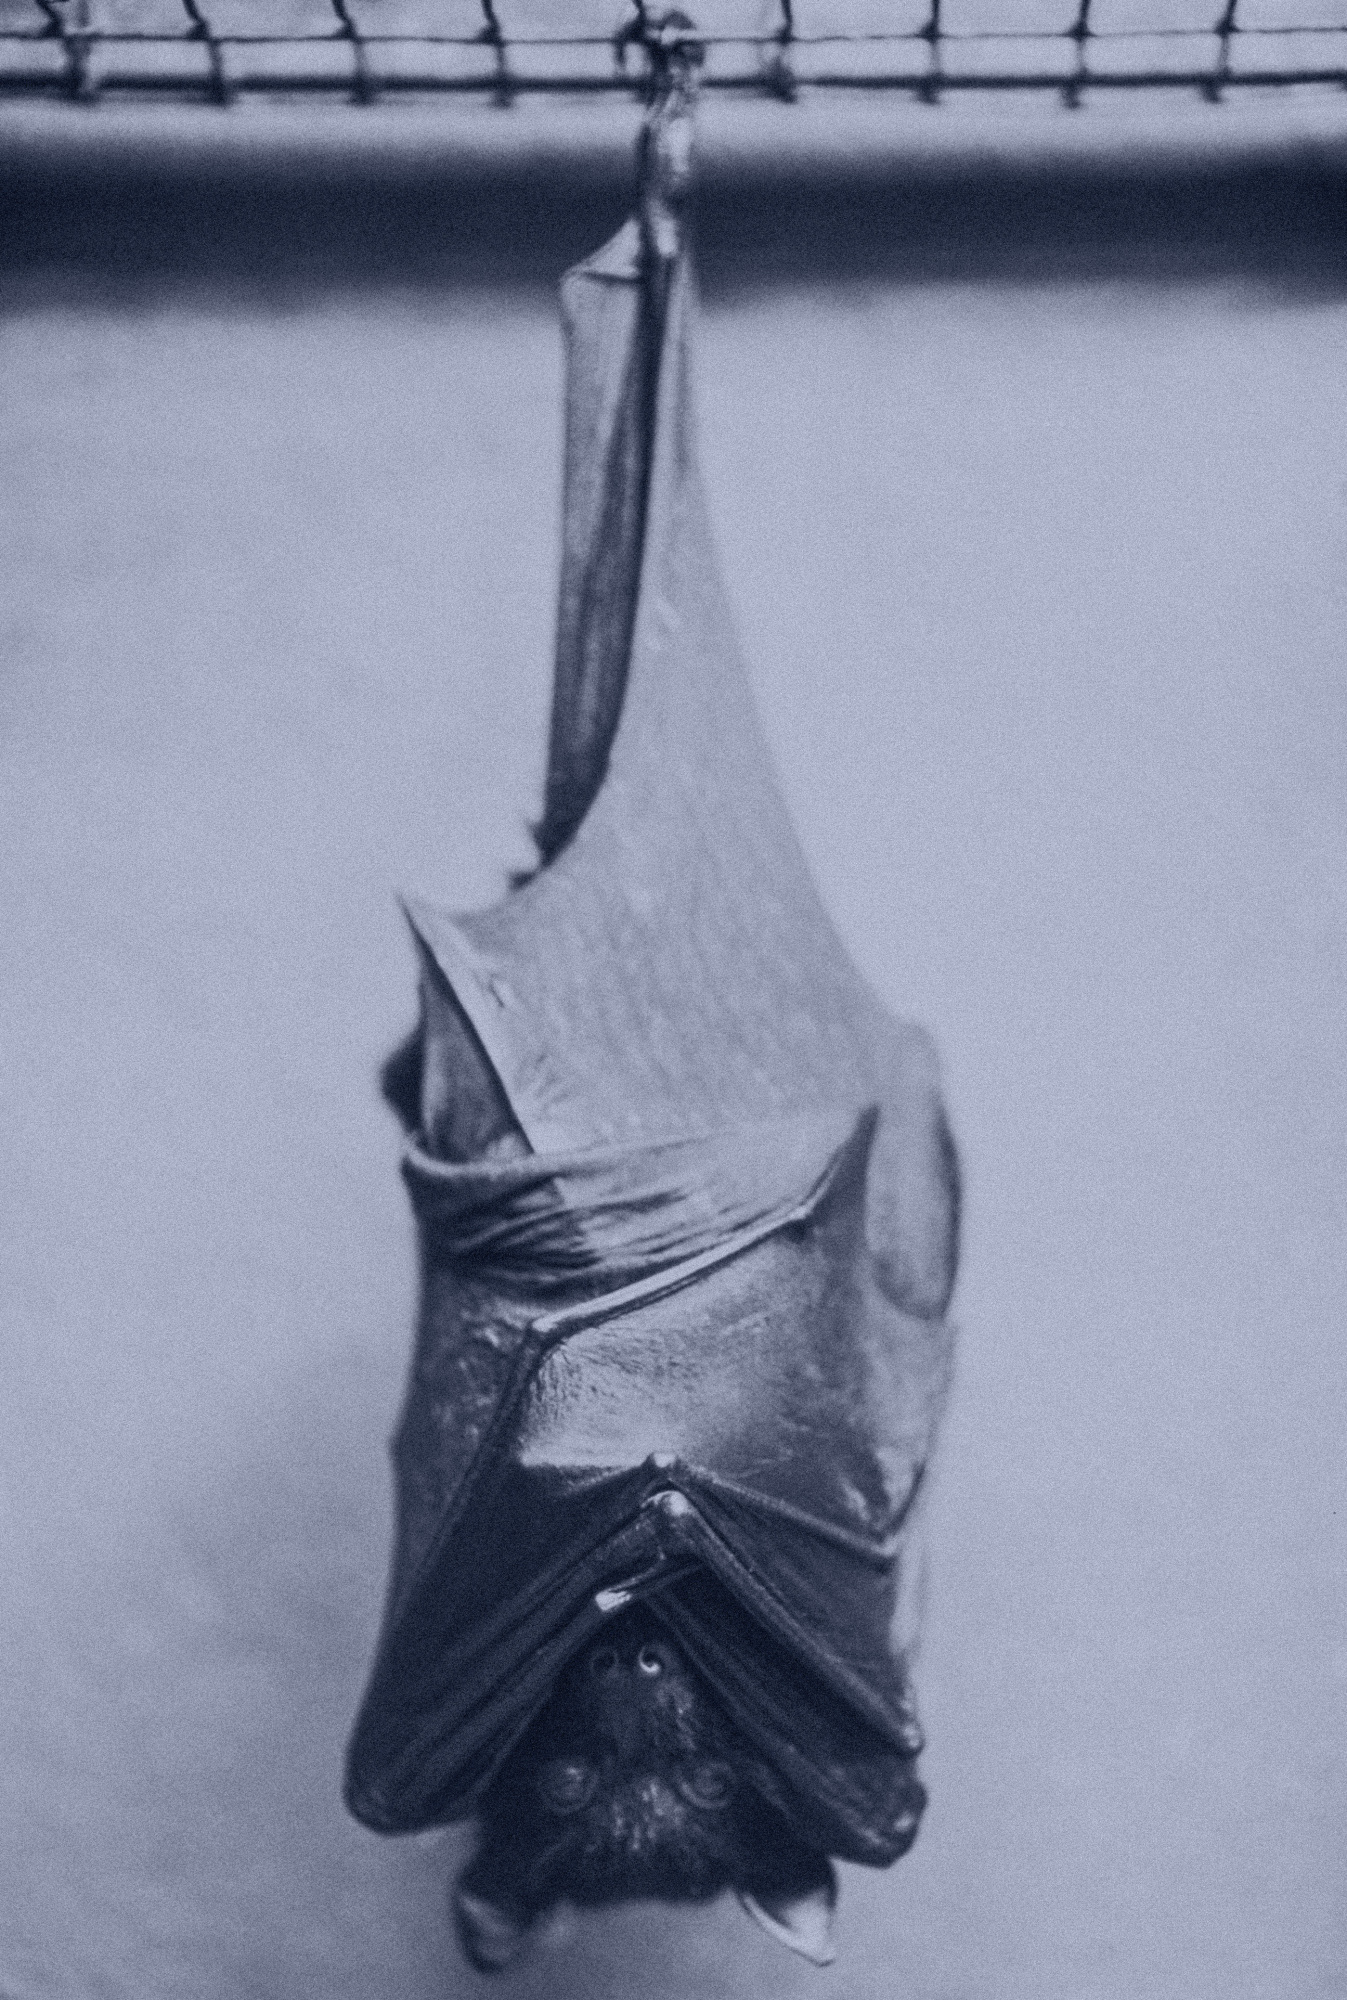 Bat Hanging in Cage